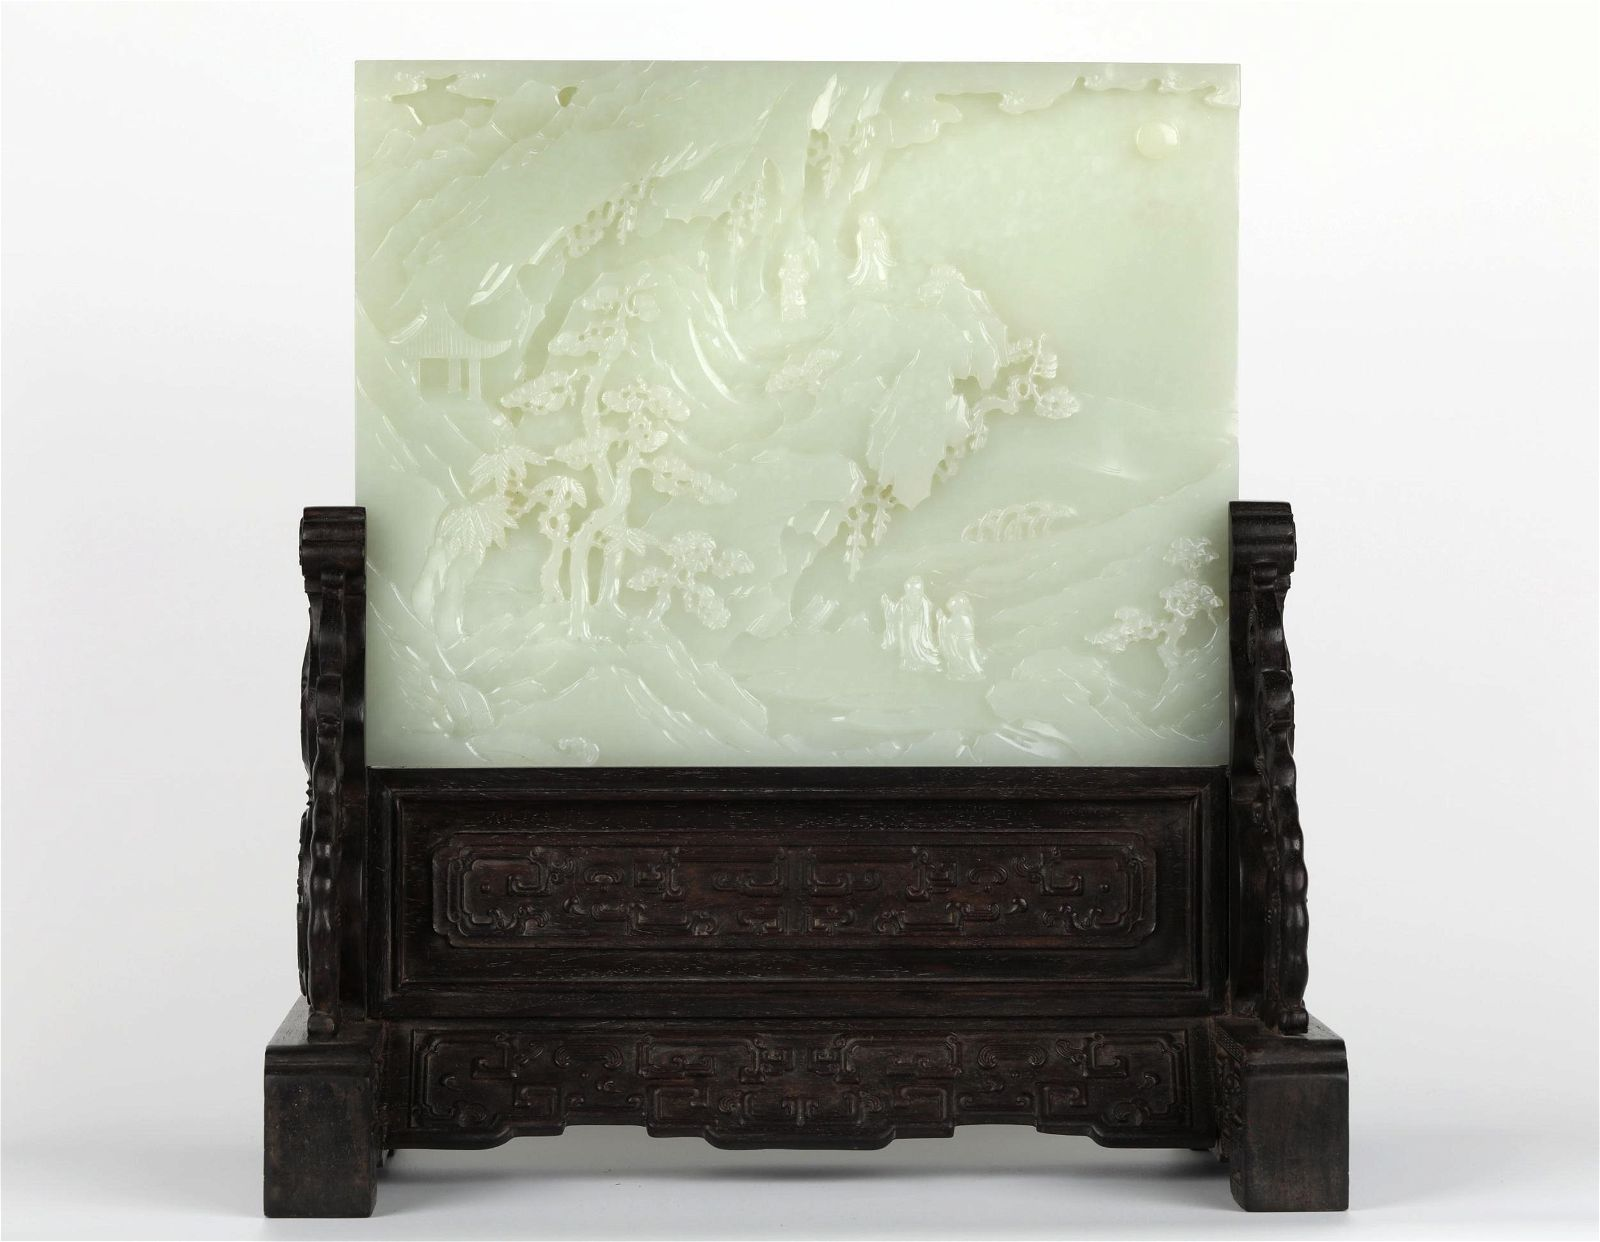 Chinese Carved Jade Plaque Table Screen